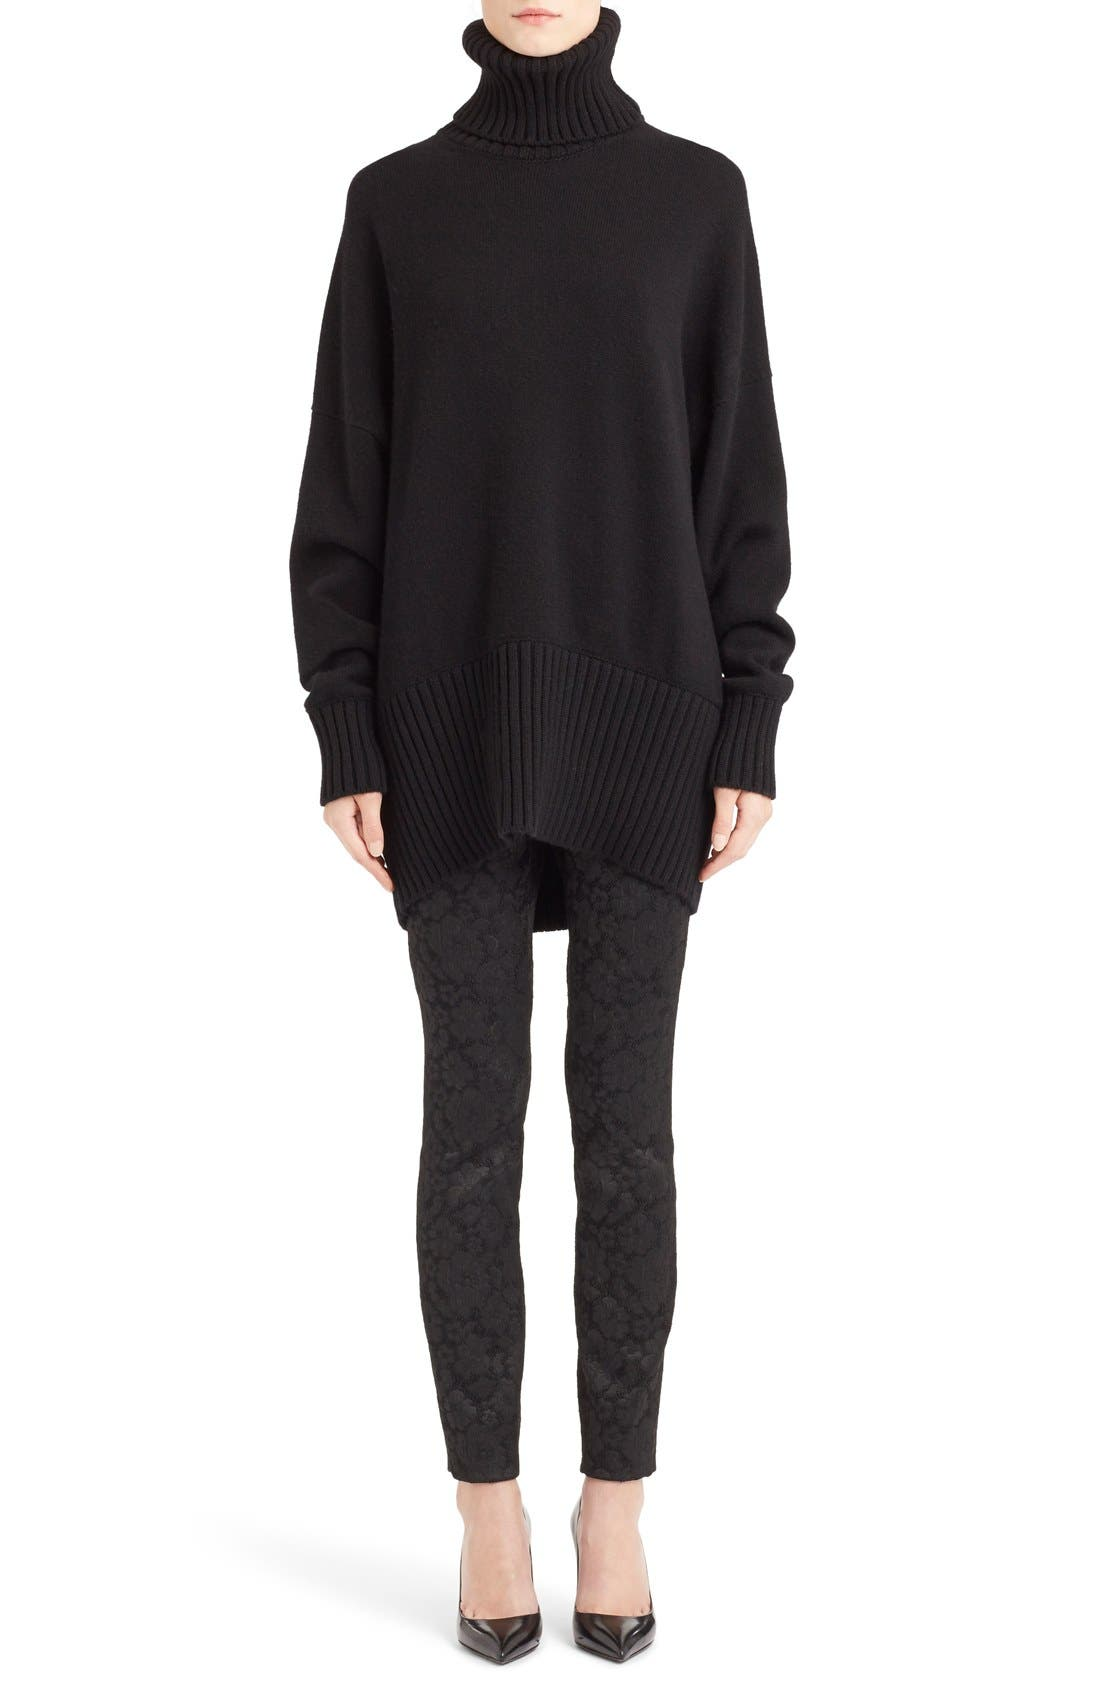 Alternate Image 1 Selected - Dolce&Gabbana Turtleneck Cashmere Sweater